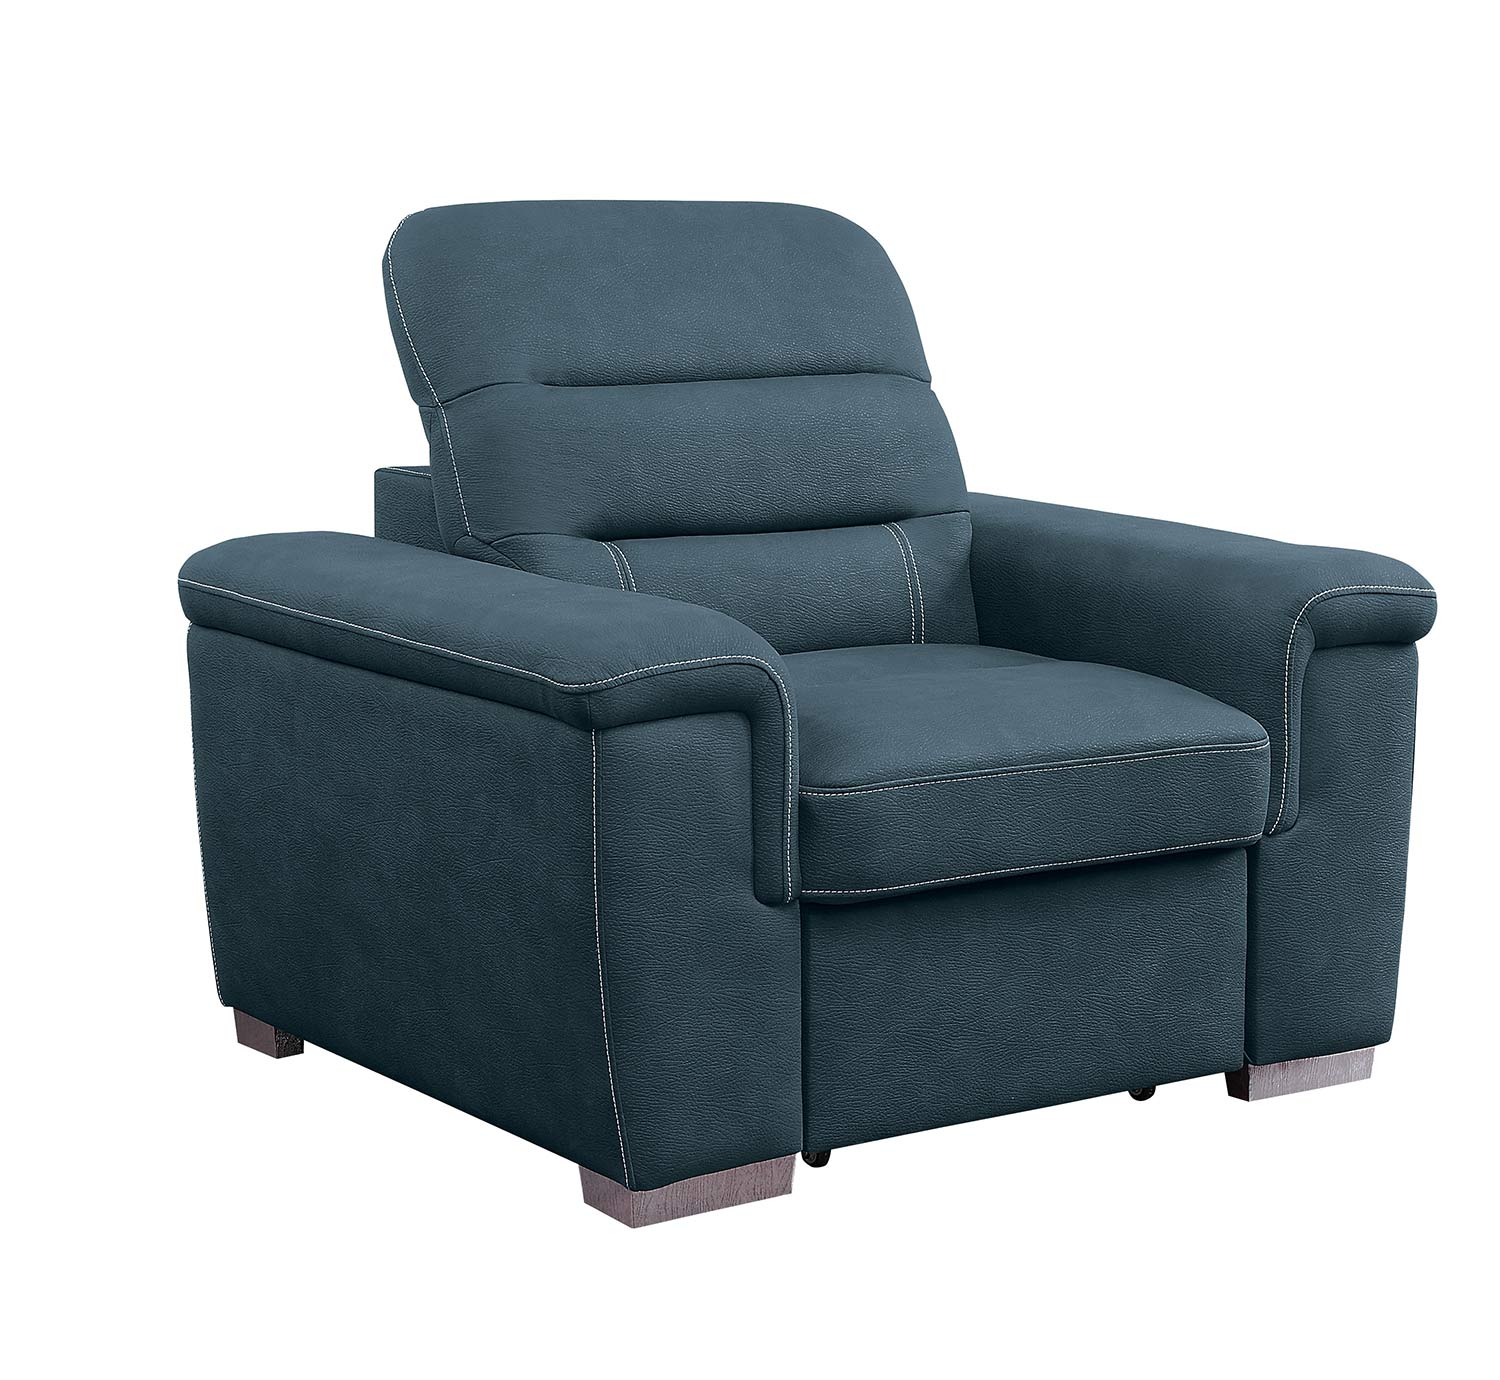 Homelegance Alfio Chair with Pull-out Ottoman - Blue